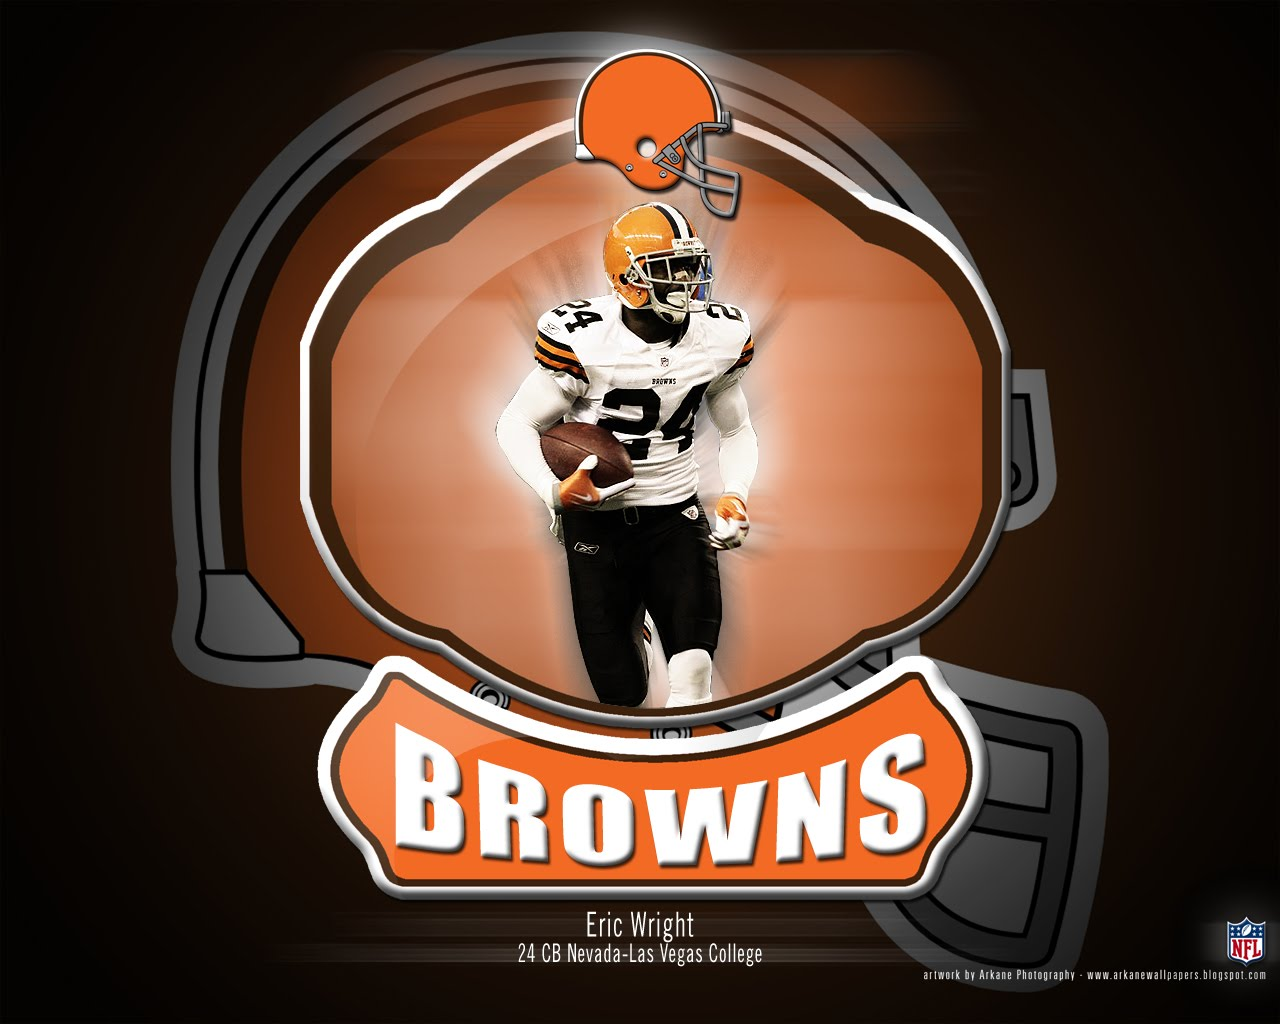 Arkane NFL Wallpapers Eric Wright   Cleveland Browns 1280x1024